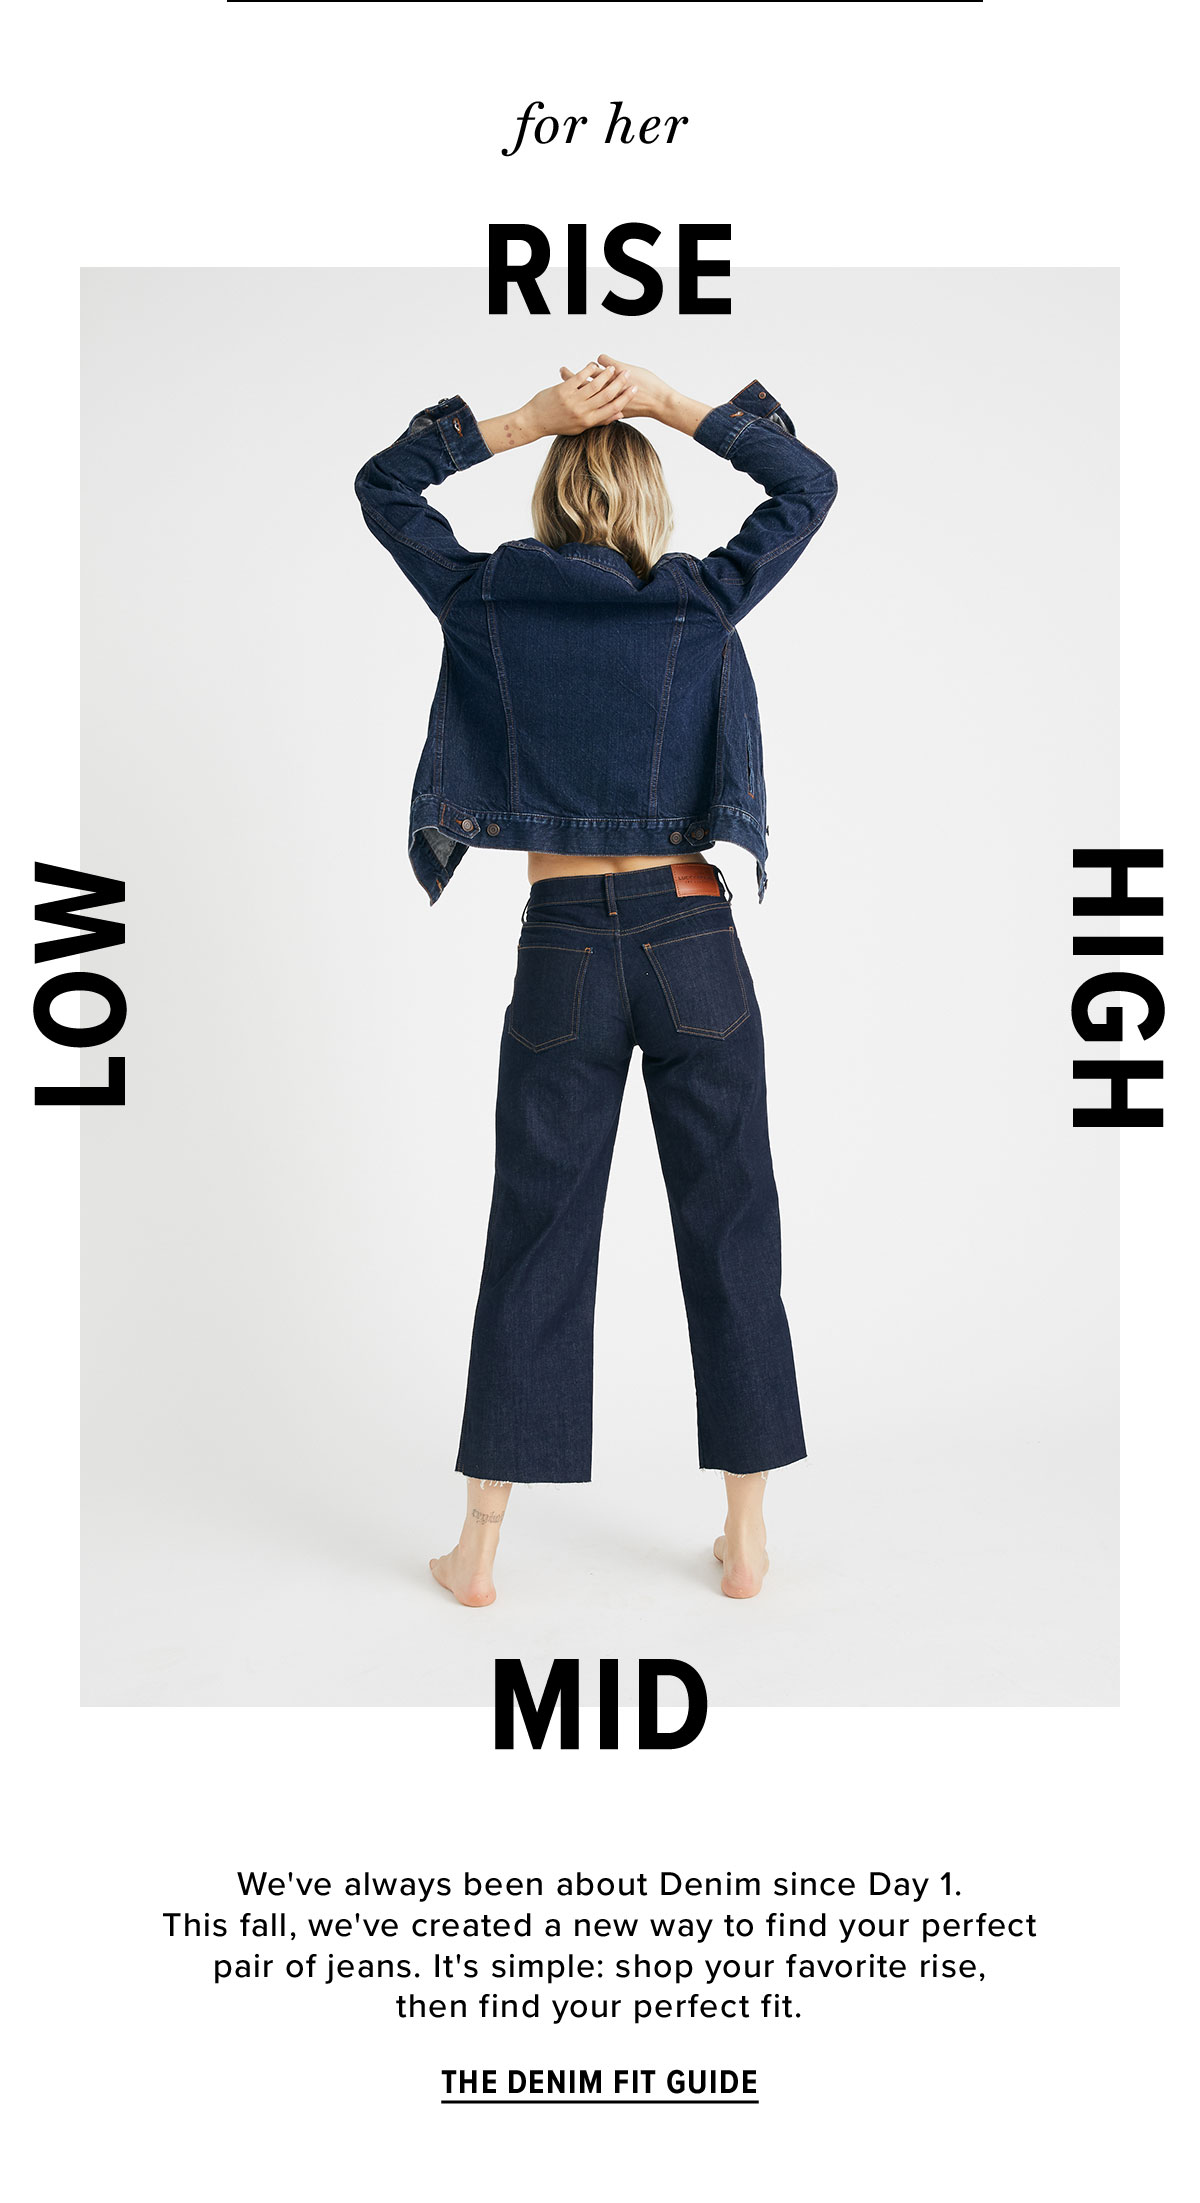 For Her - The Denim Fit Guide